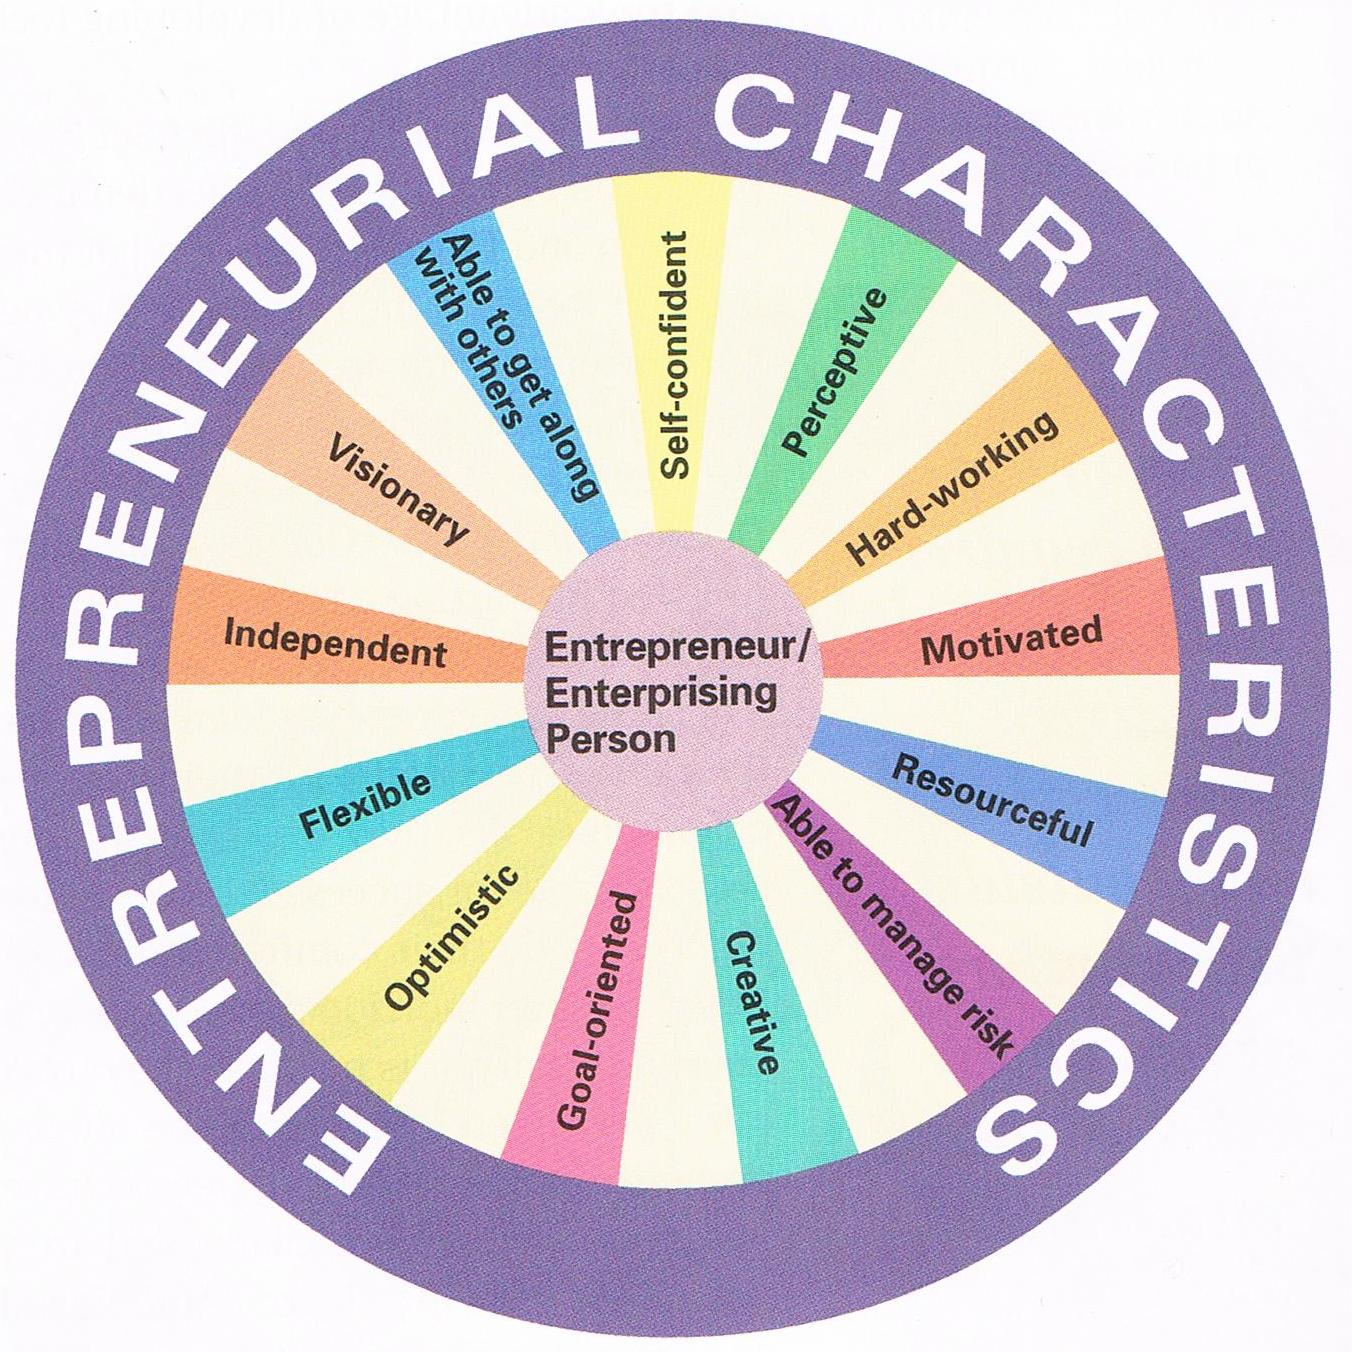 characteristics and traits of good entrepreneurs What makes an entrepreneur successful here are some of the most common and powerful character traits that describe successful small business owners.